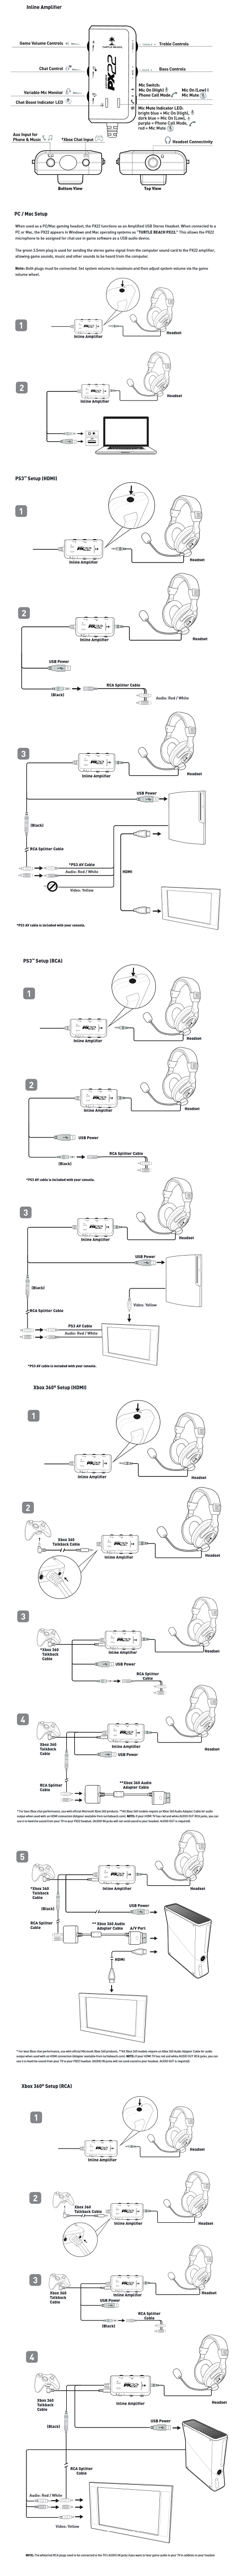 PX22_SETUP turtle beach px22 wiring diagram how to rewire turtle beach Ear Force PX21 at highcare.asia